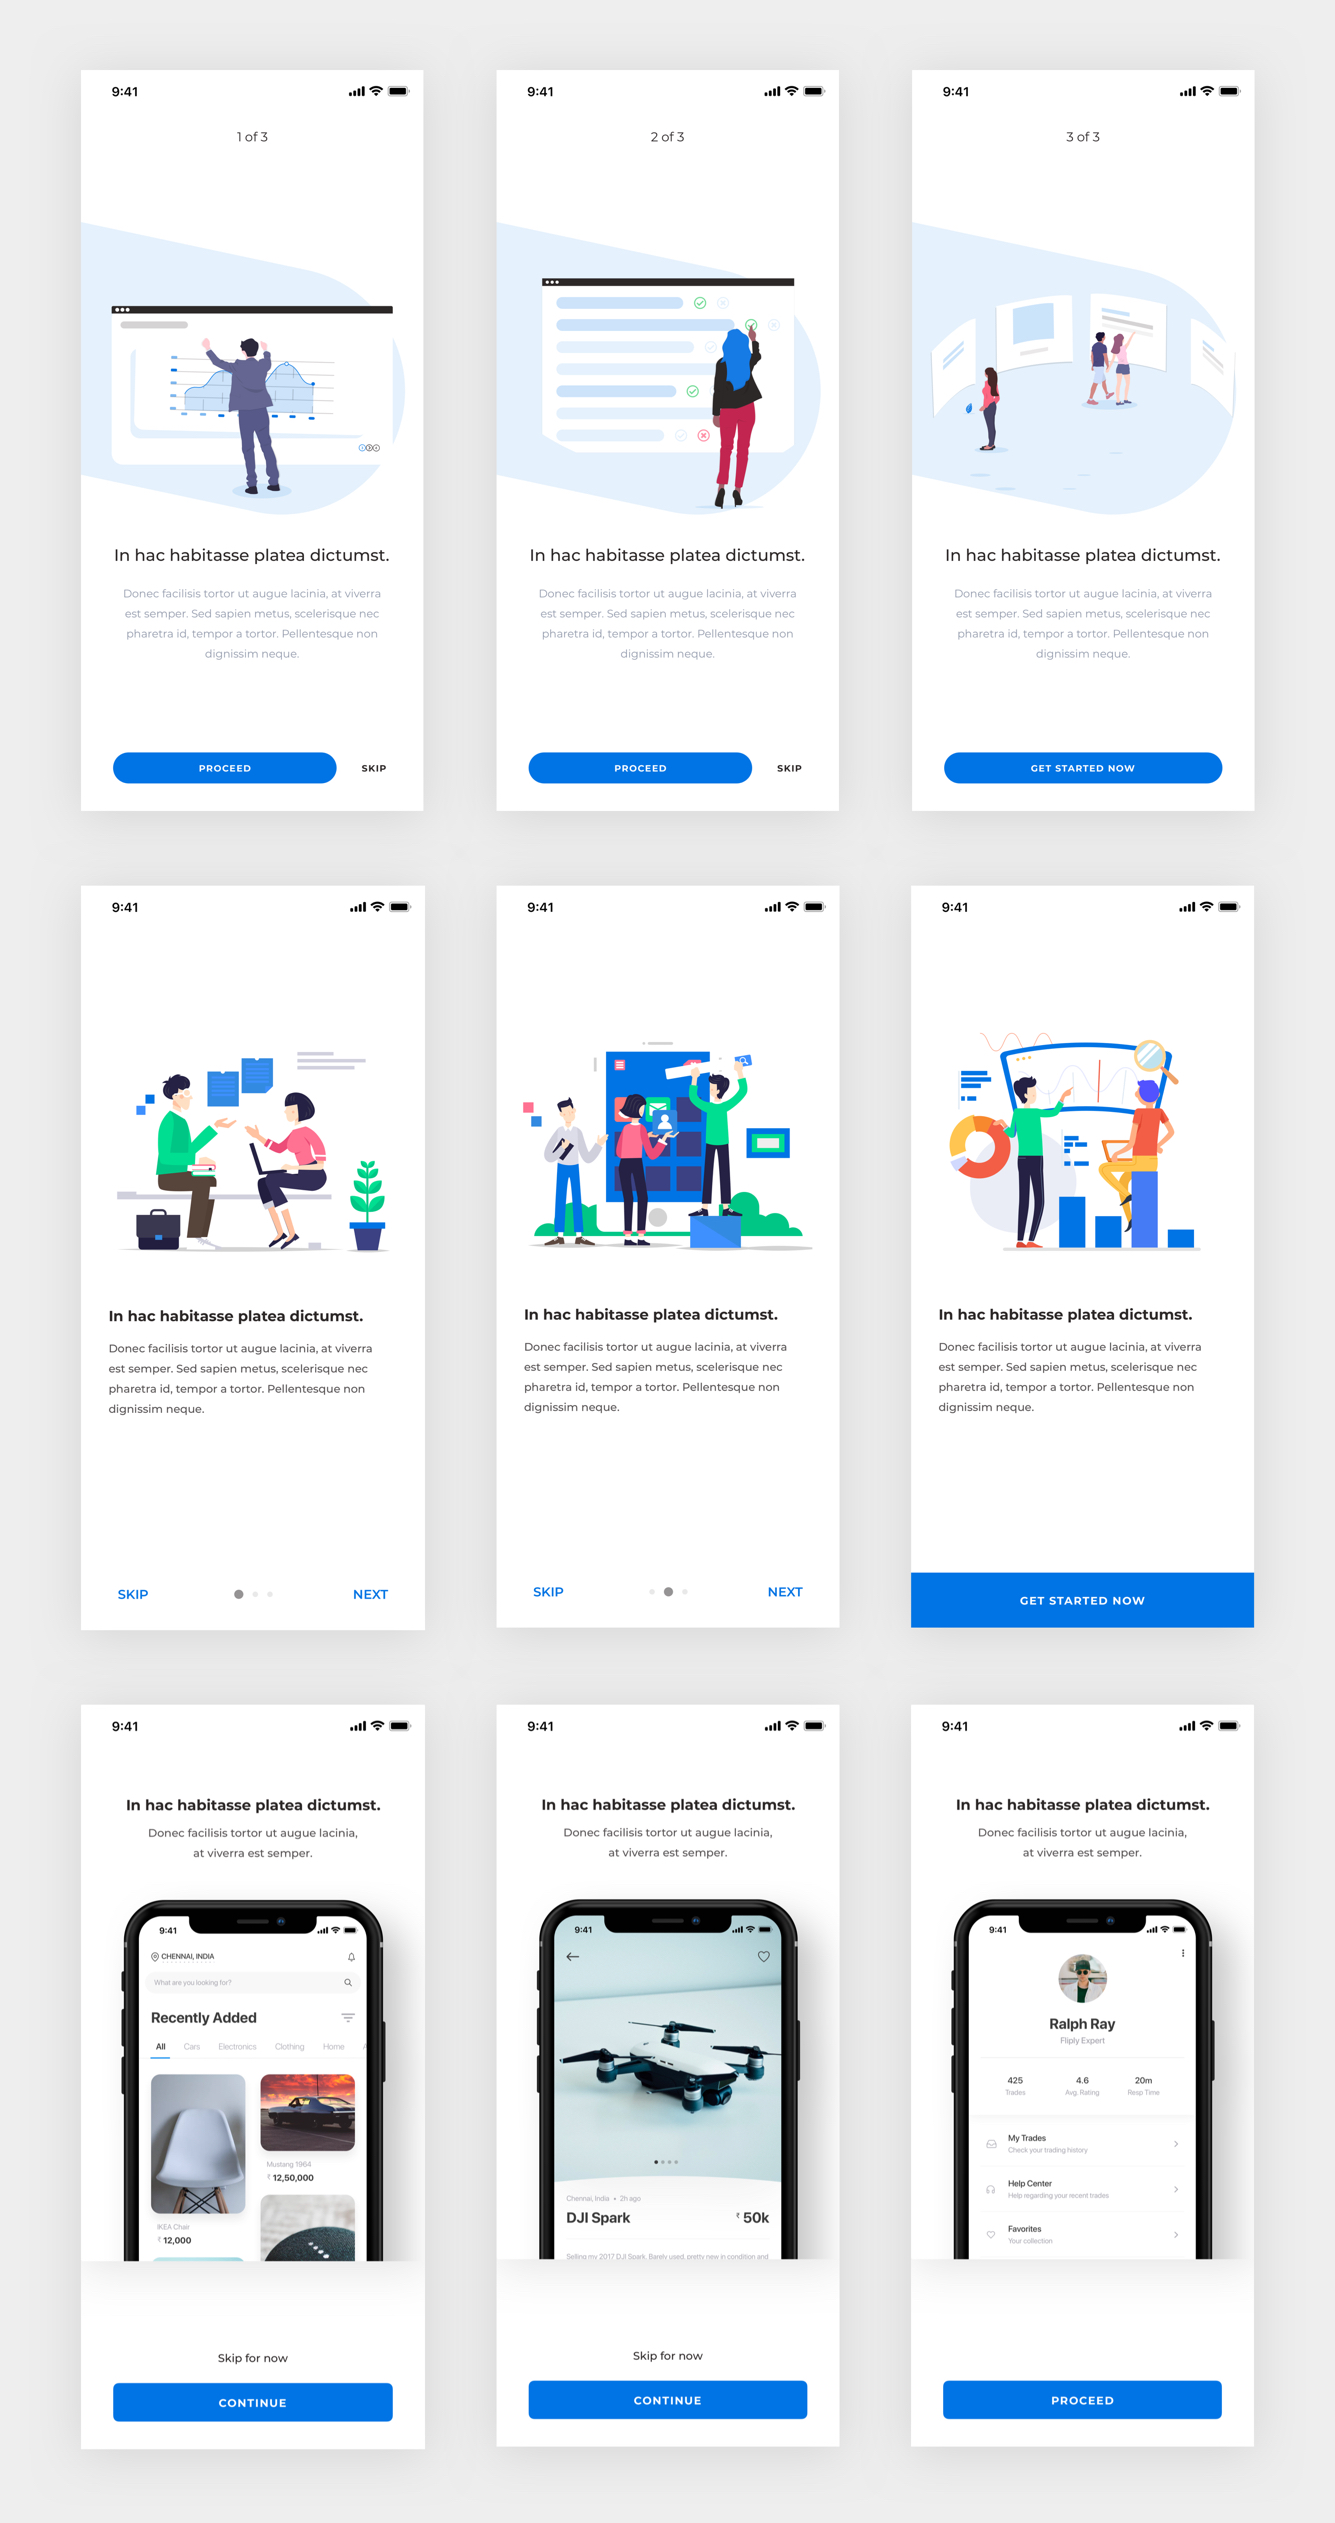 Mobile App Onboarding Screens - Minimal and clean app's onboarding process design, 9 screens for you to get started